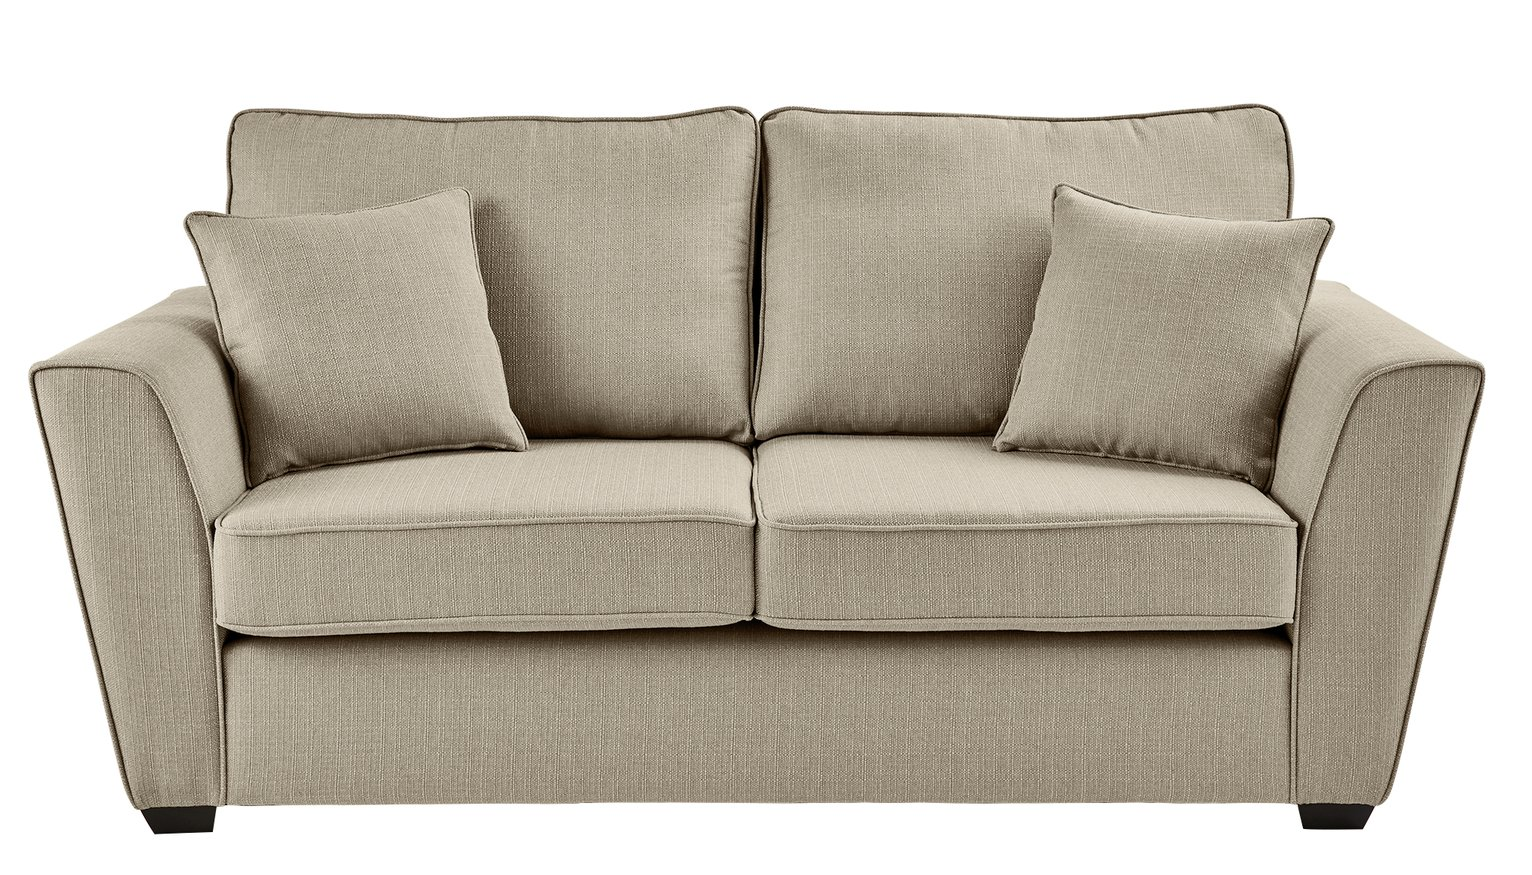 argos ava fabric sofa review small leather sectional sleeper of collection renley 2 seater natural